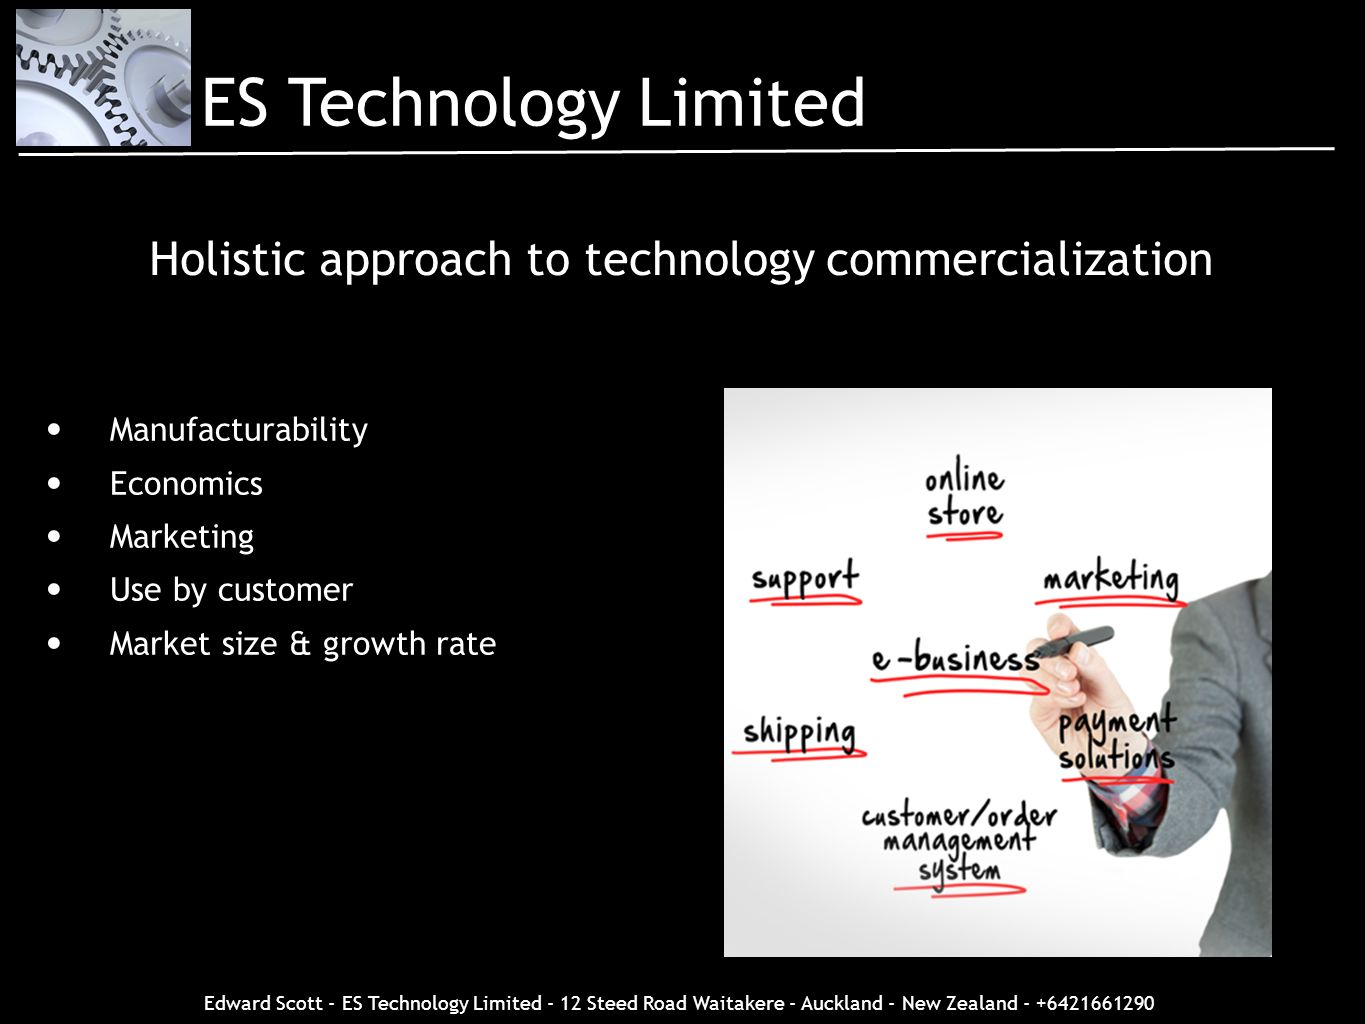 Holistic approach to technology commercialization